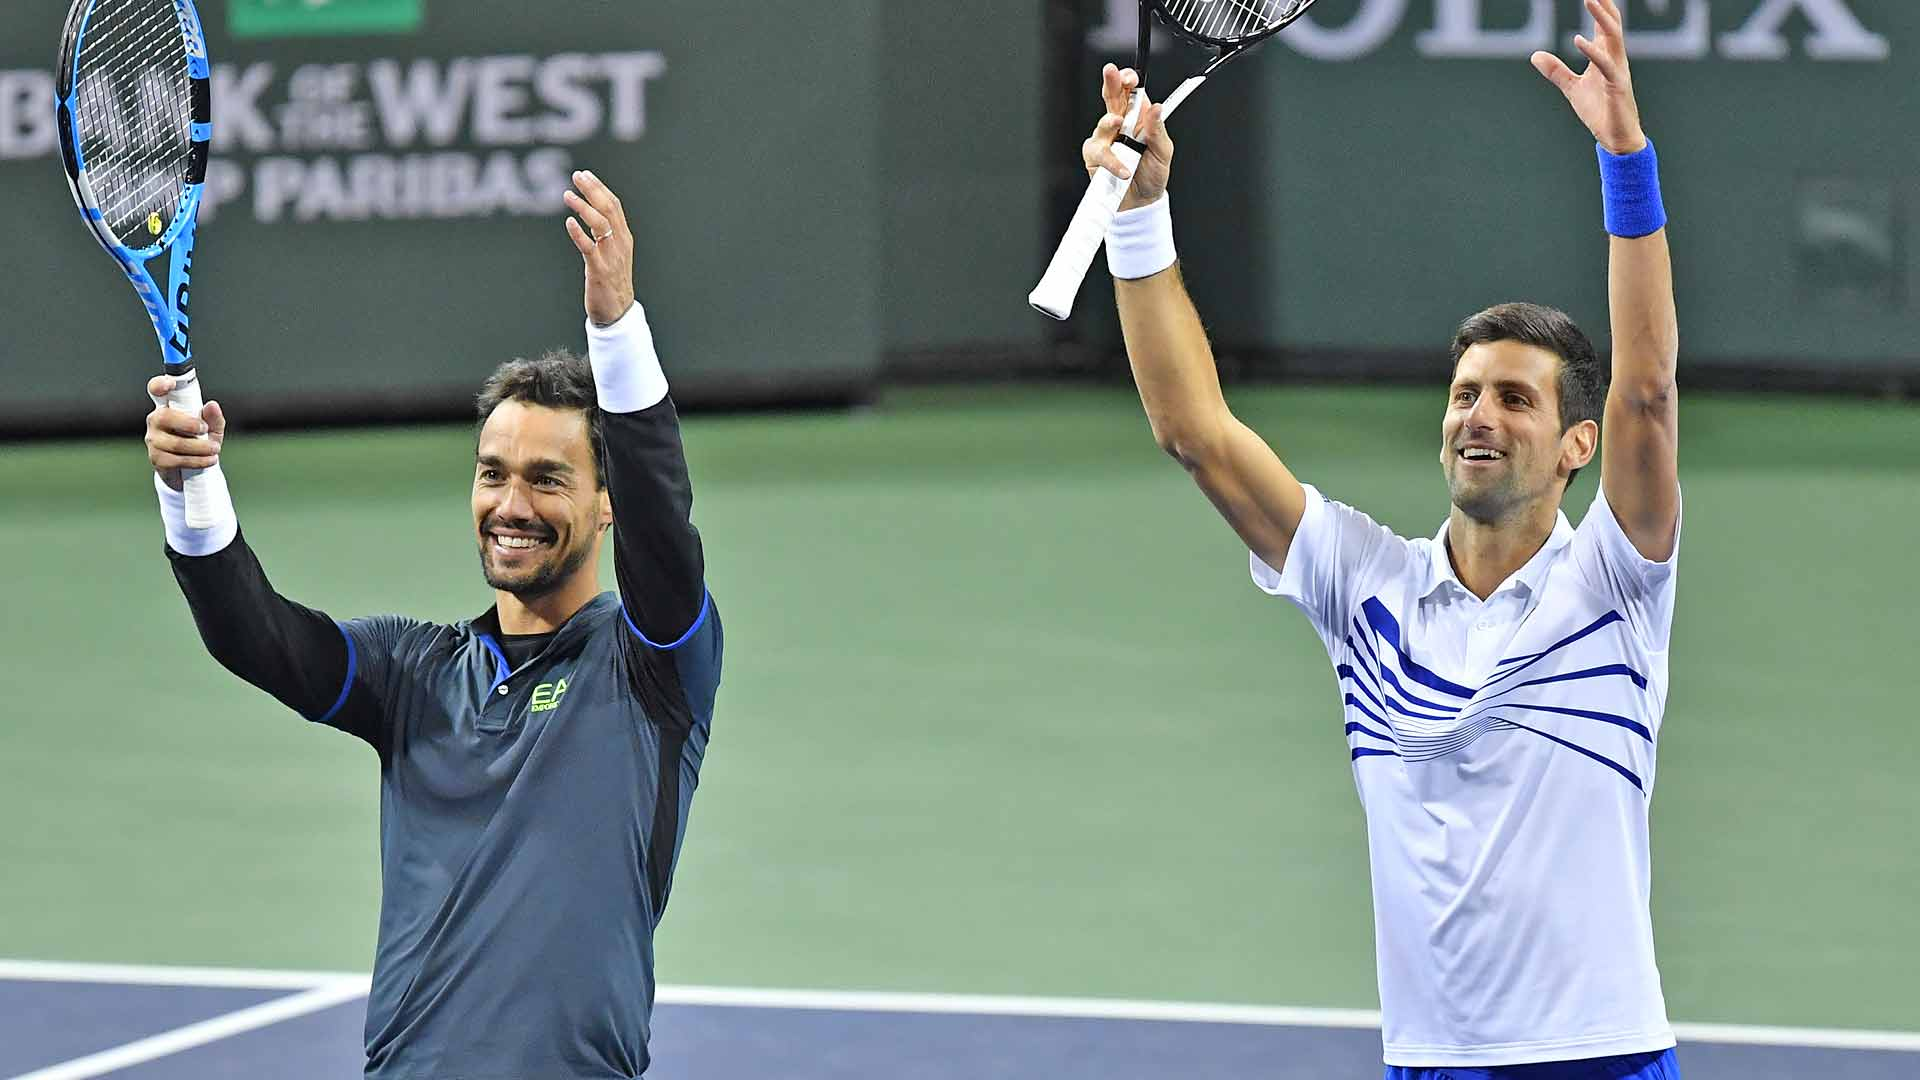 Novak Djokovic stunned by Kohlschreiber, 35, is keen to 'turn the page'